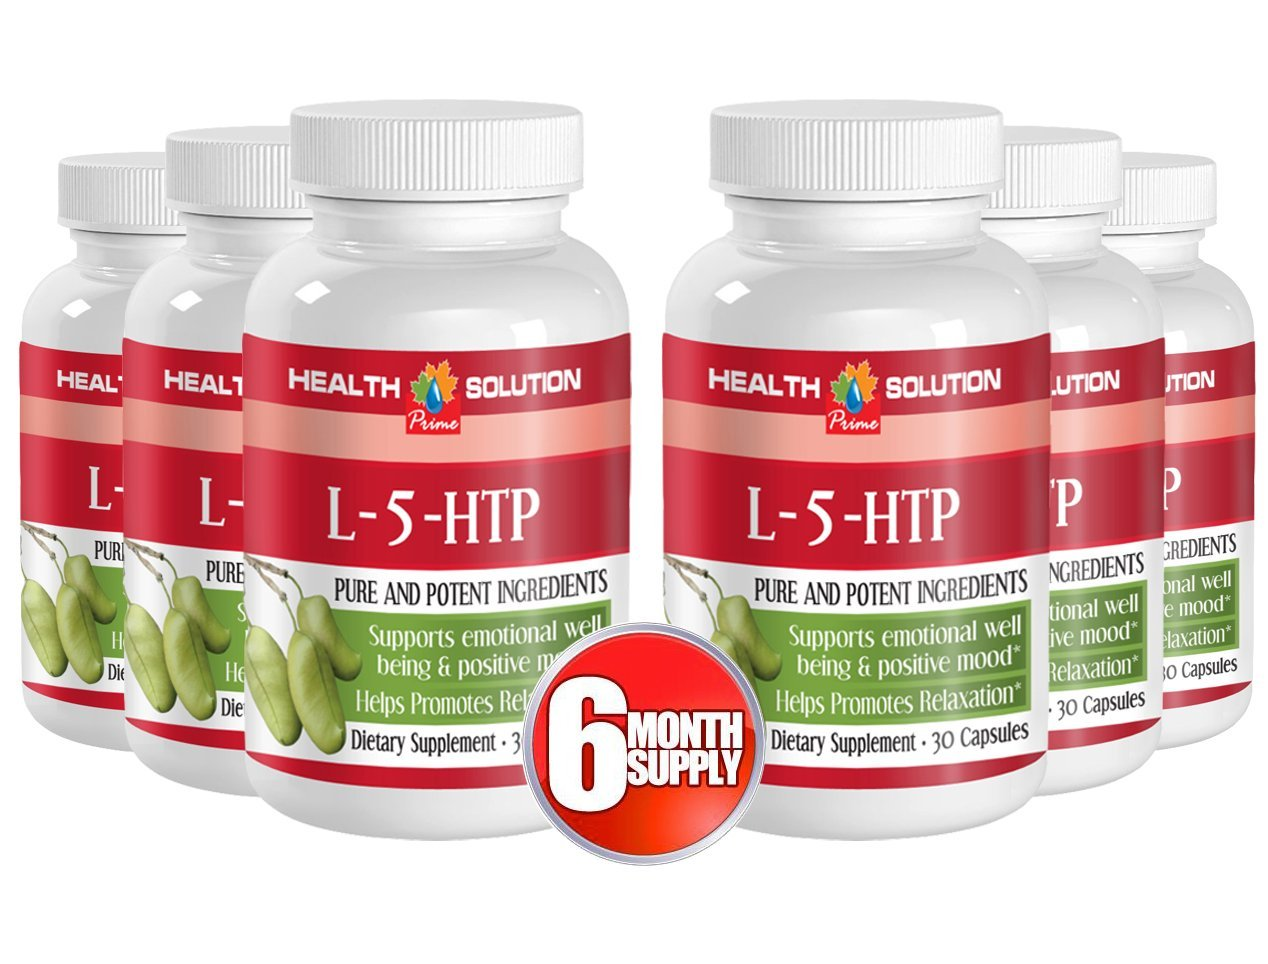 5 htp l tyrosine - L-5-HTP - brain and memory support (6 Bottles)